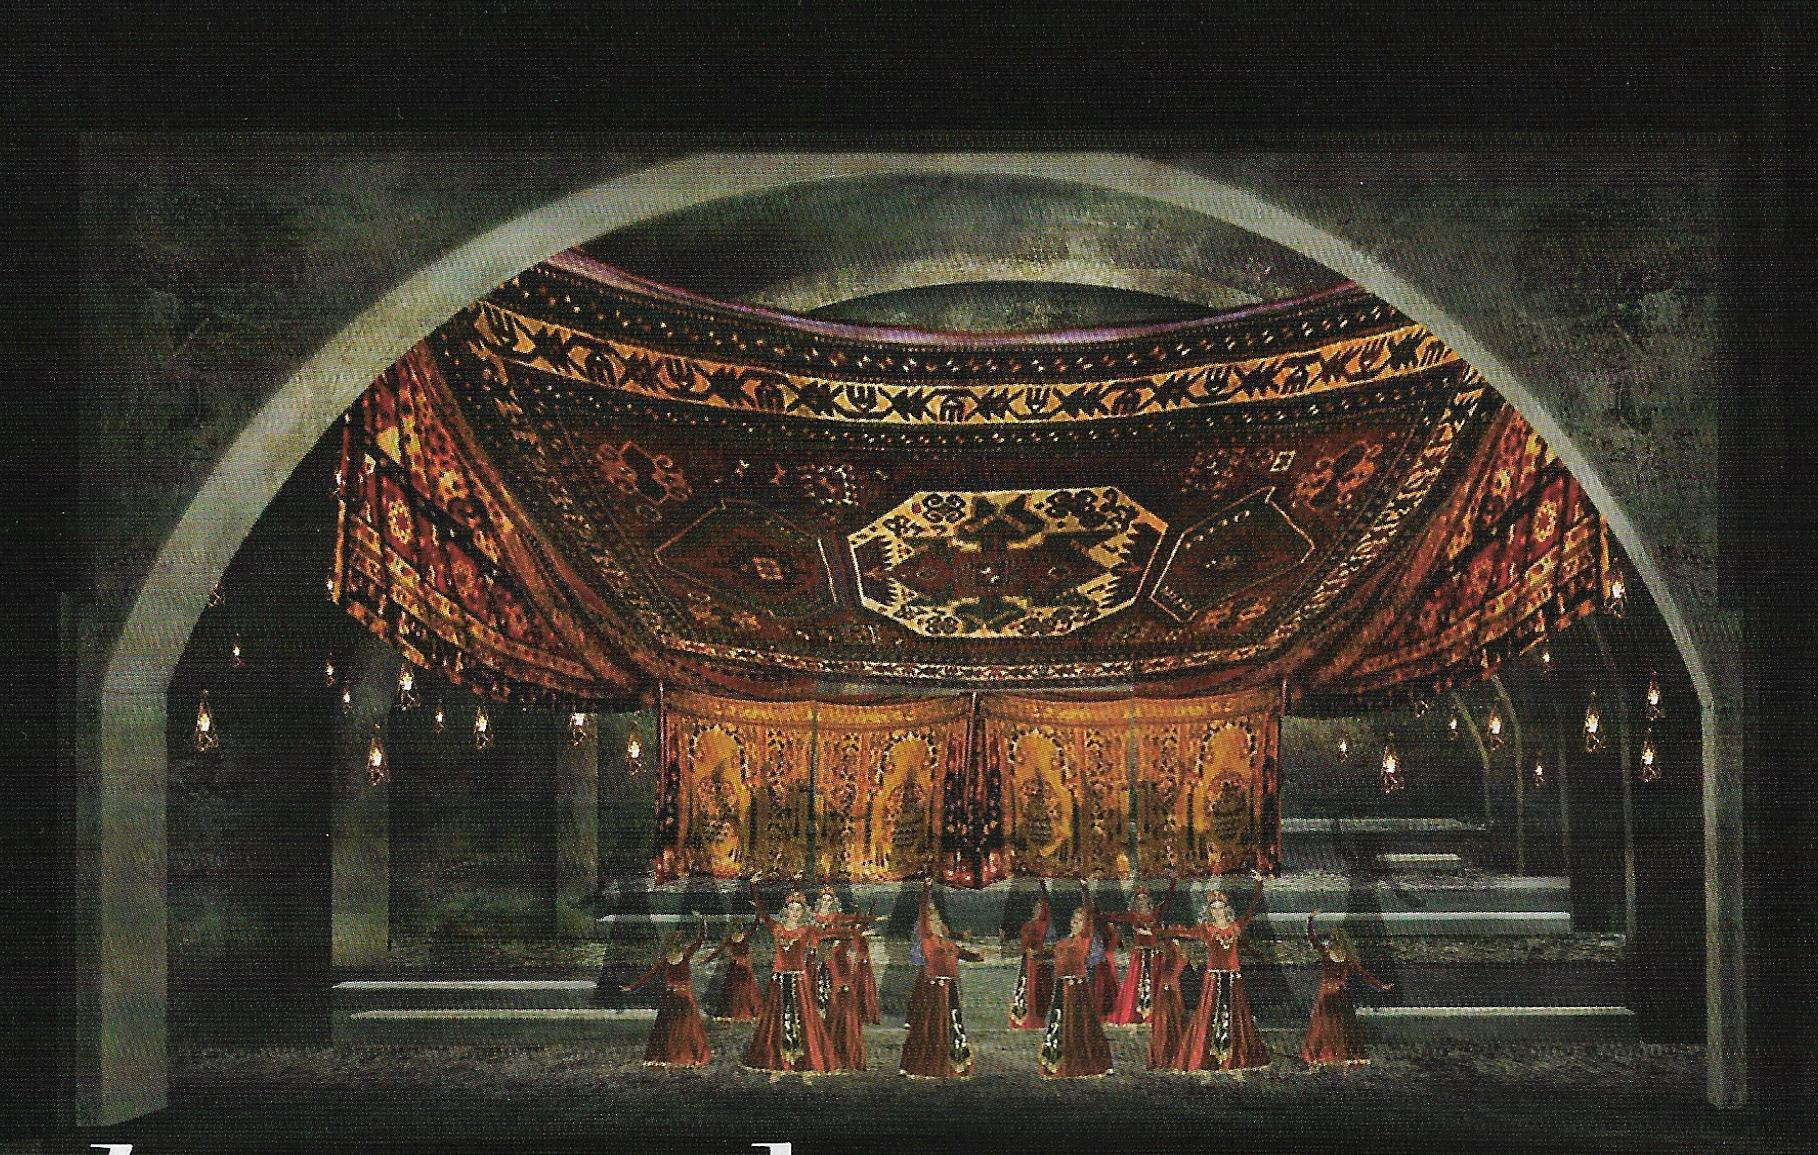 Model set designed by Paul Tate dePoo for Bard's   Демон